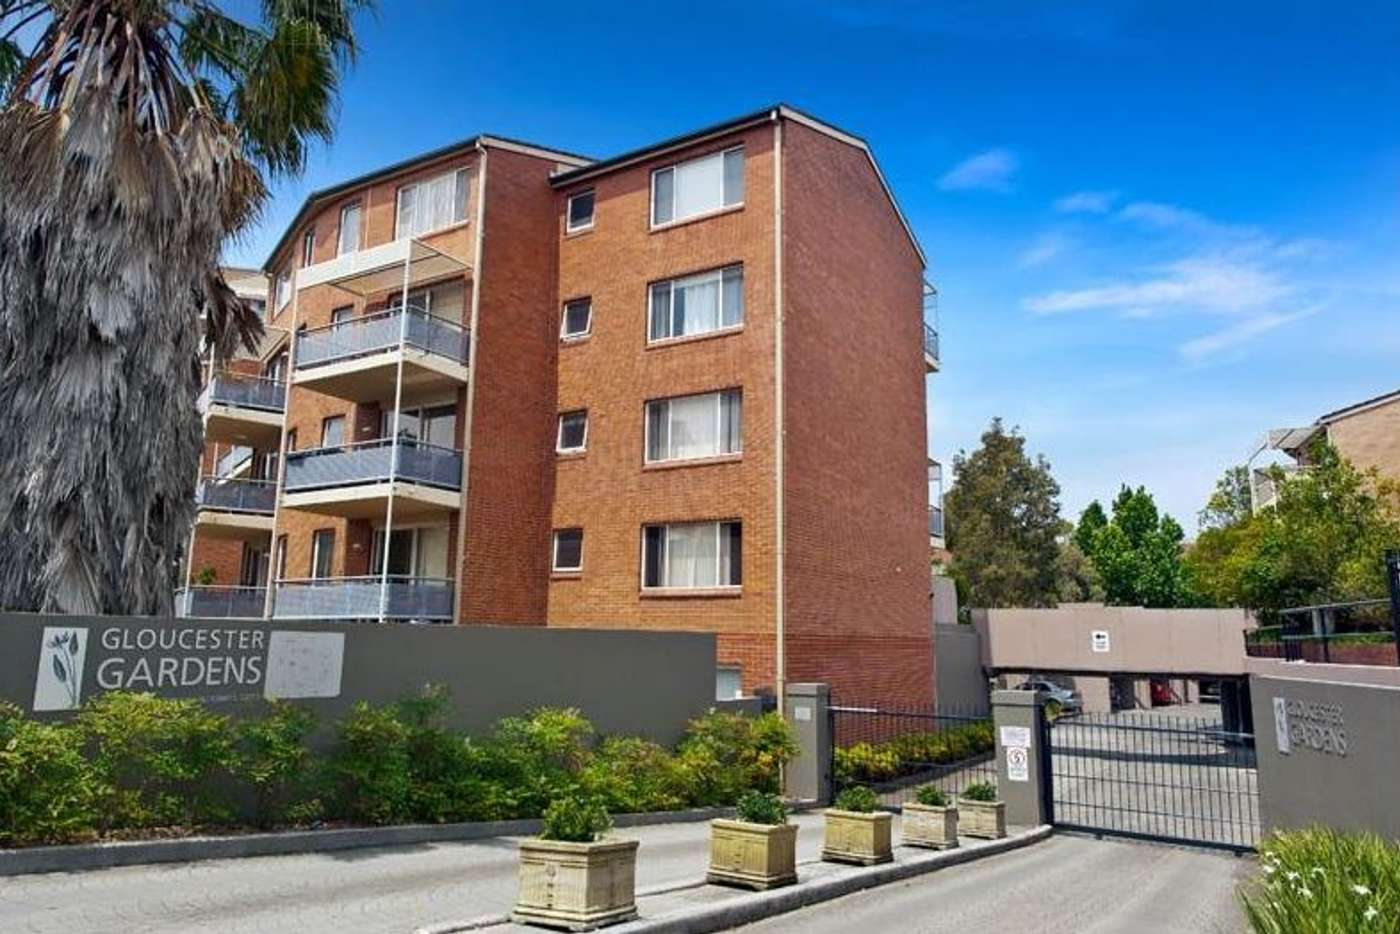 Main view of Homely apartment listing, 61/1-7 Gloucester Place, Kensington NSW 2033